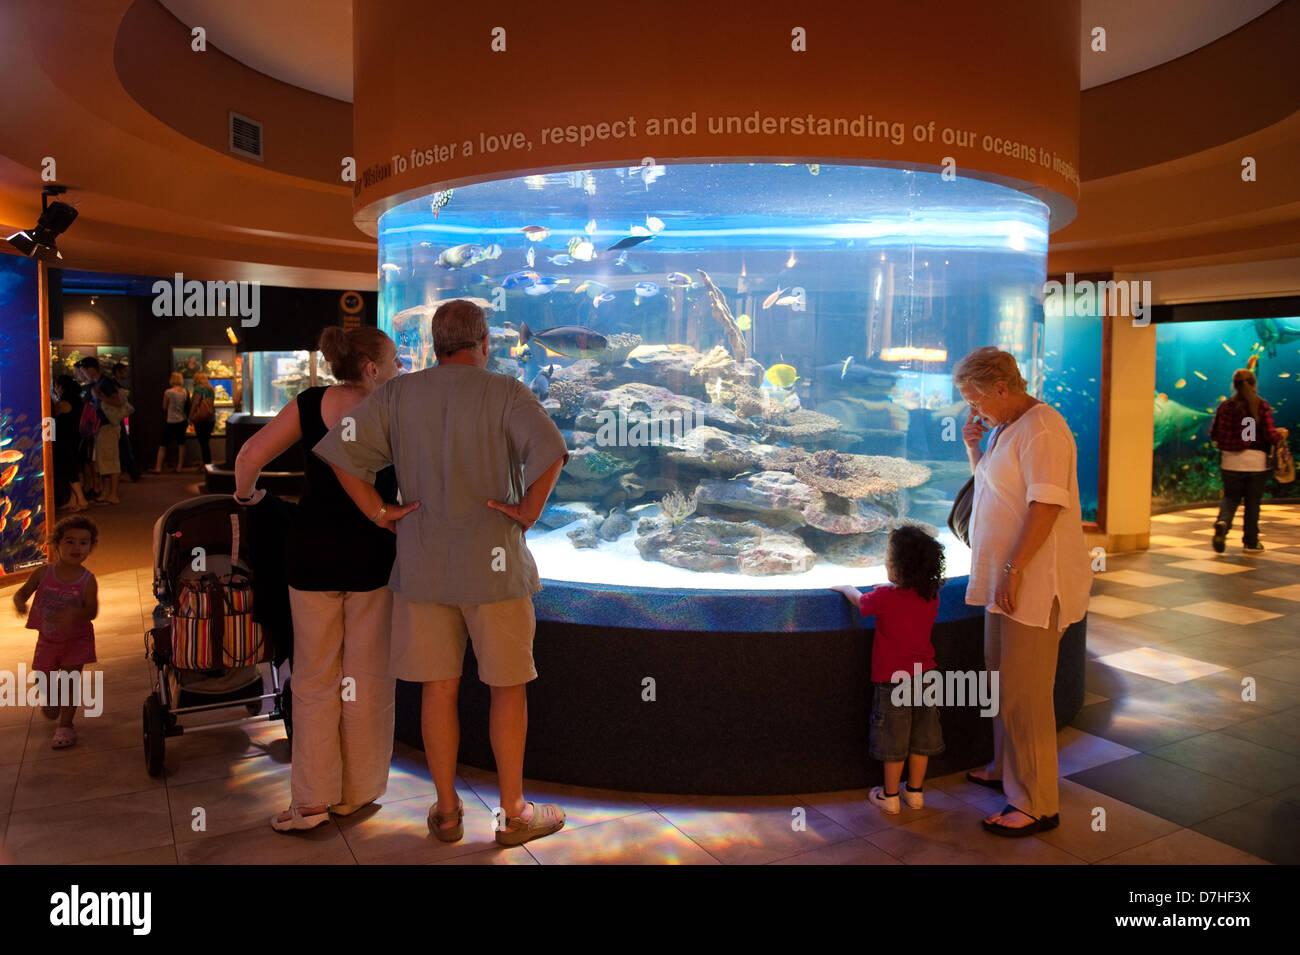 Two Oceans Aquarium, Victoria & Alfred Waterfront, Cape Town, South Africa - Stock Image